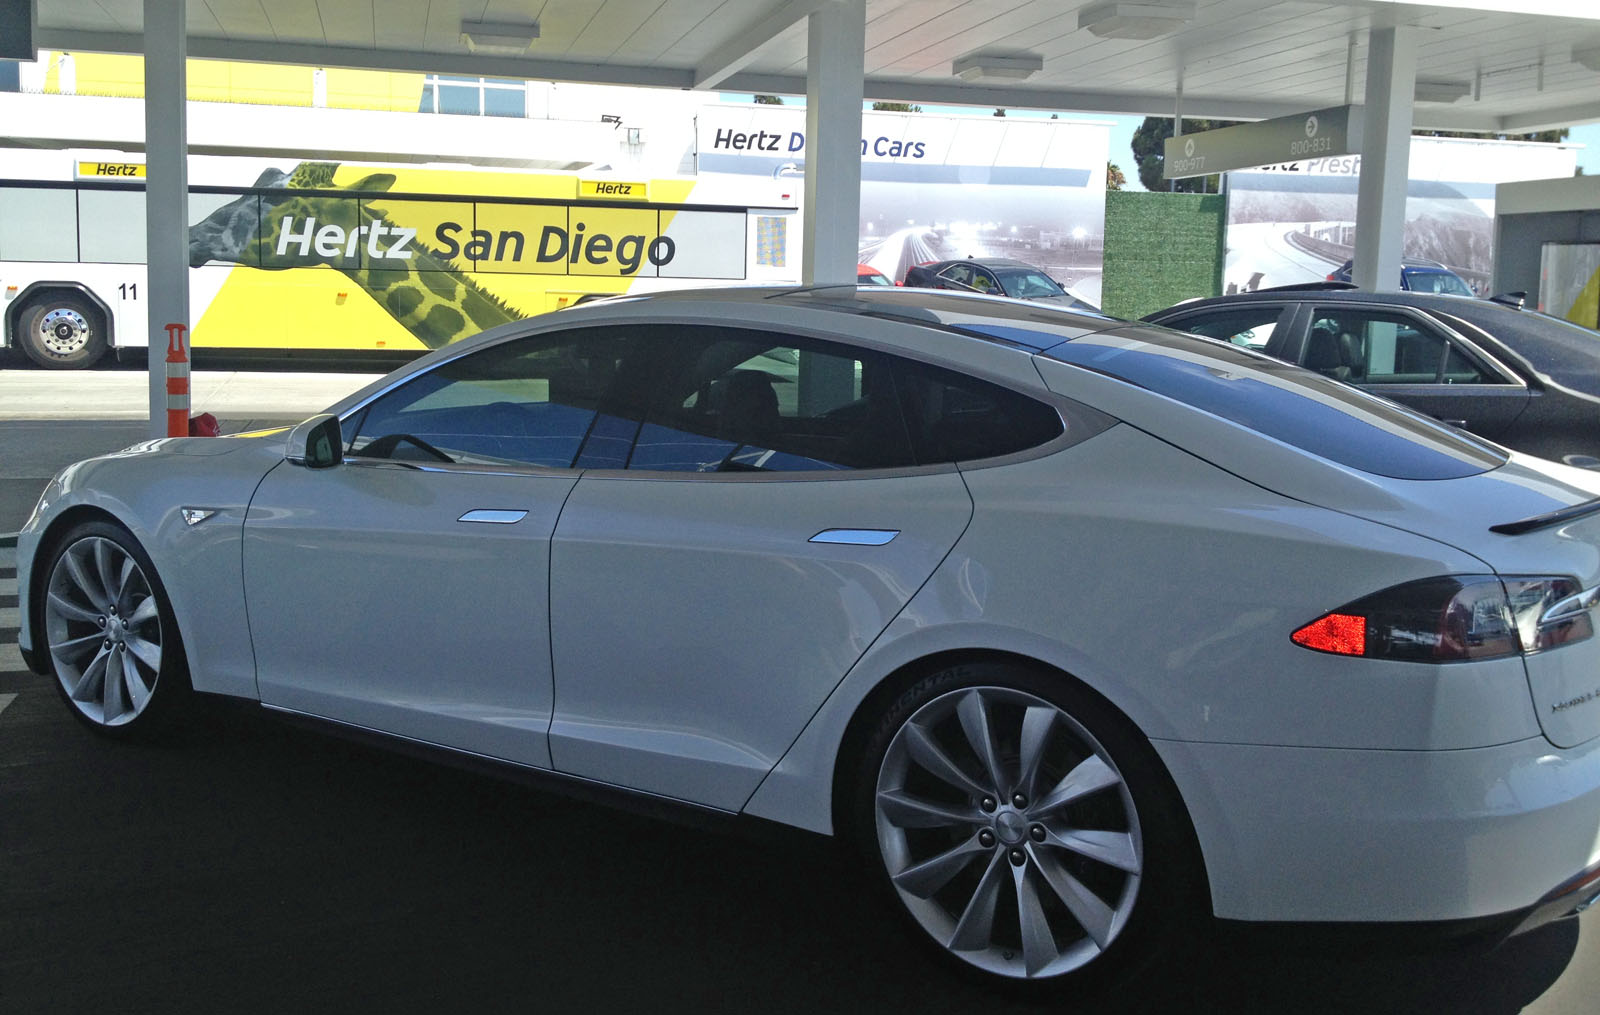 Tesla-Model-S-Rental-Car-Hertz-1